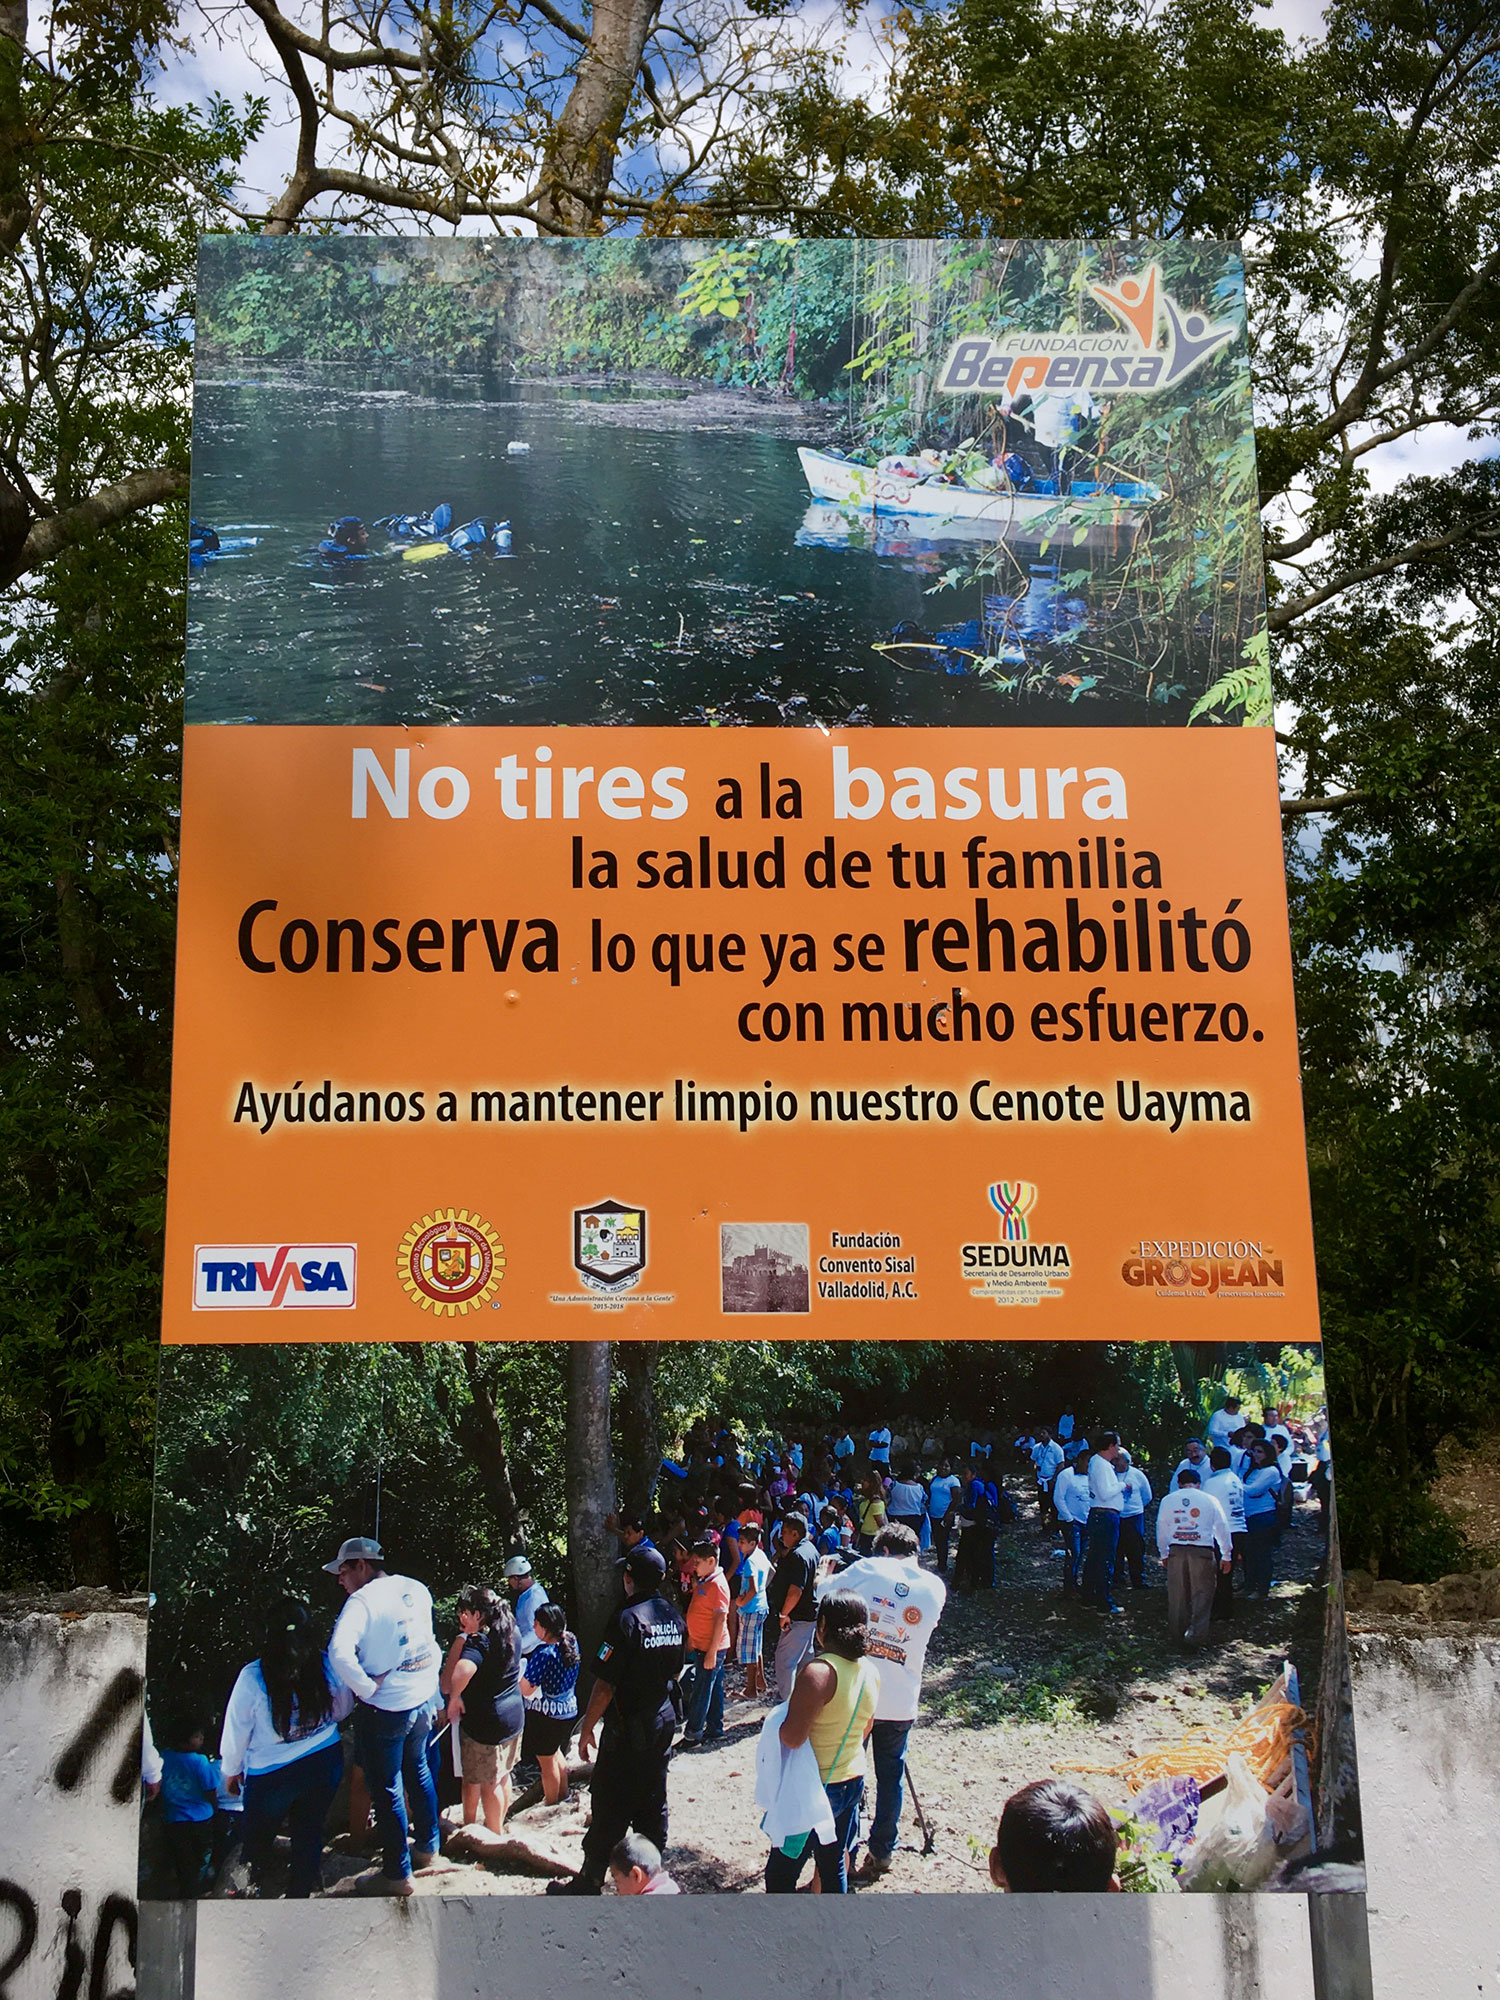 A sign by the cenote clearly indicates that it is used by the locals.